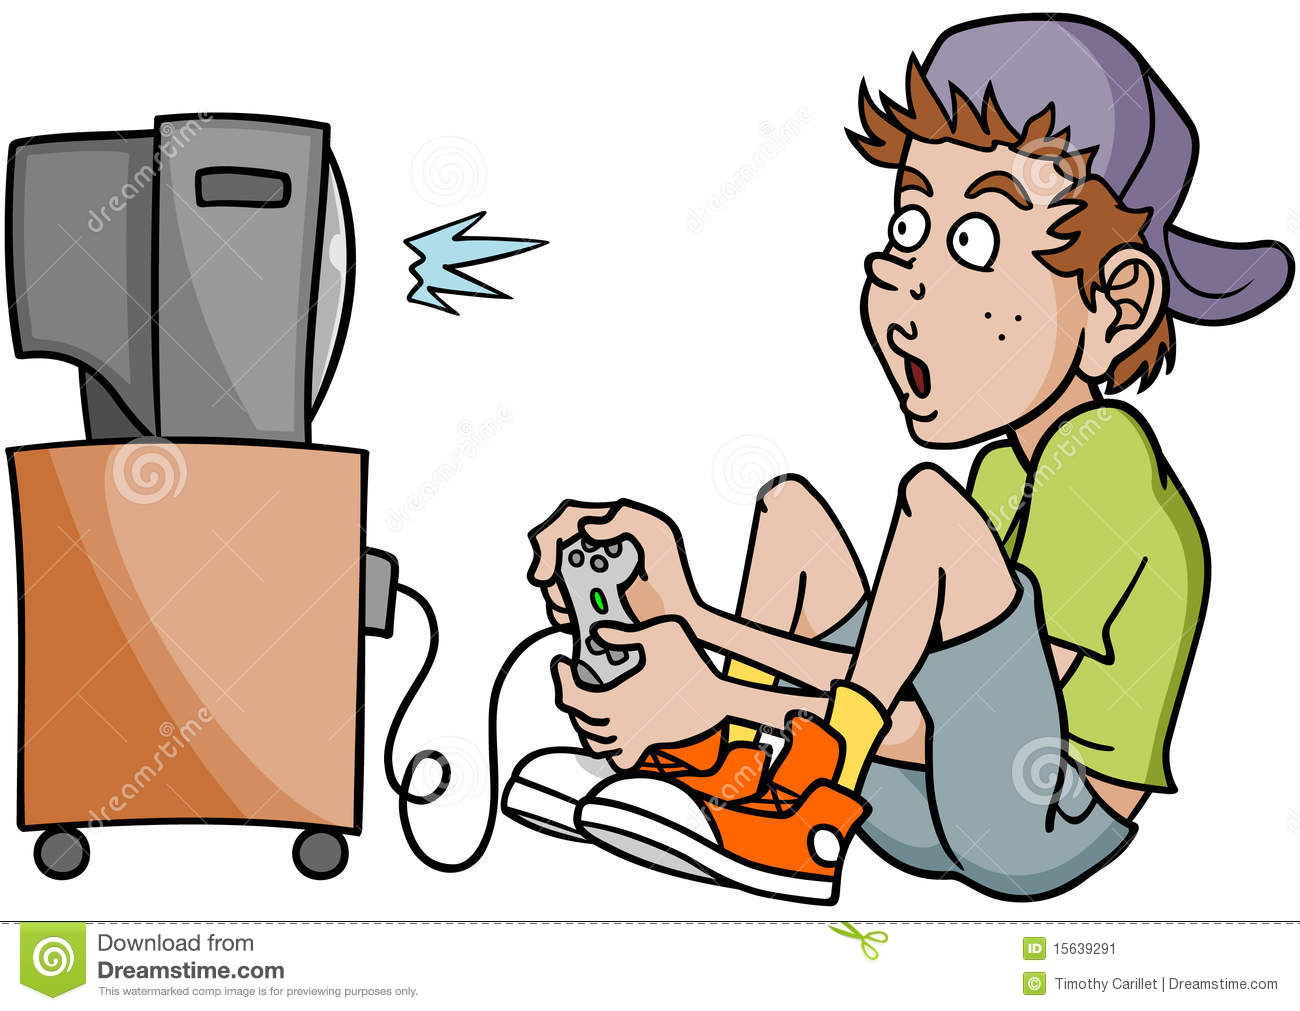 Child Playing Video Games Clipart.